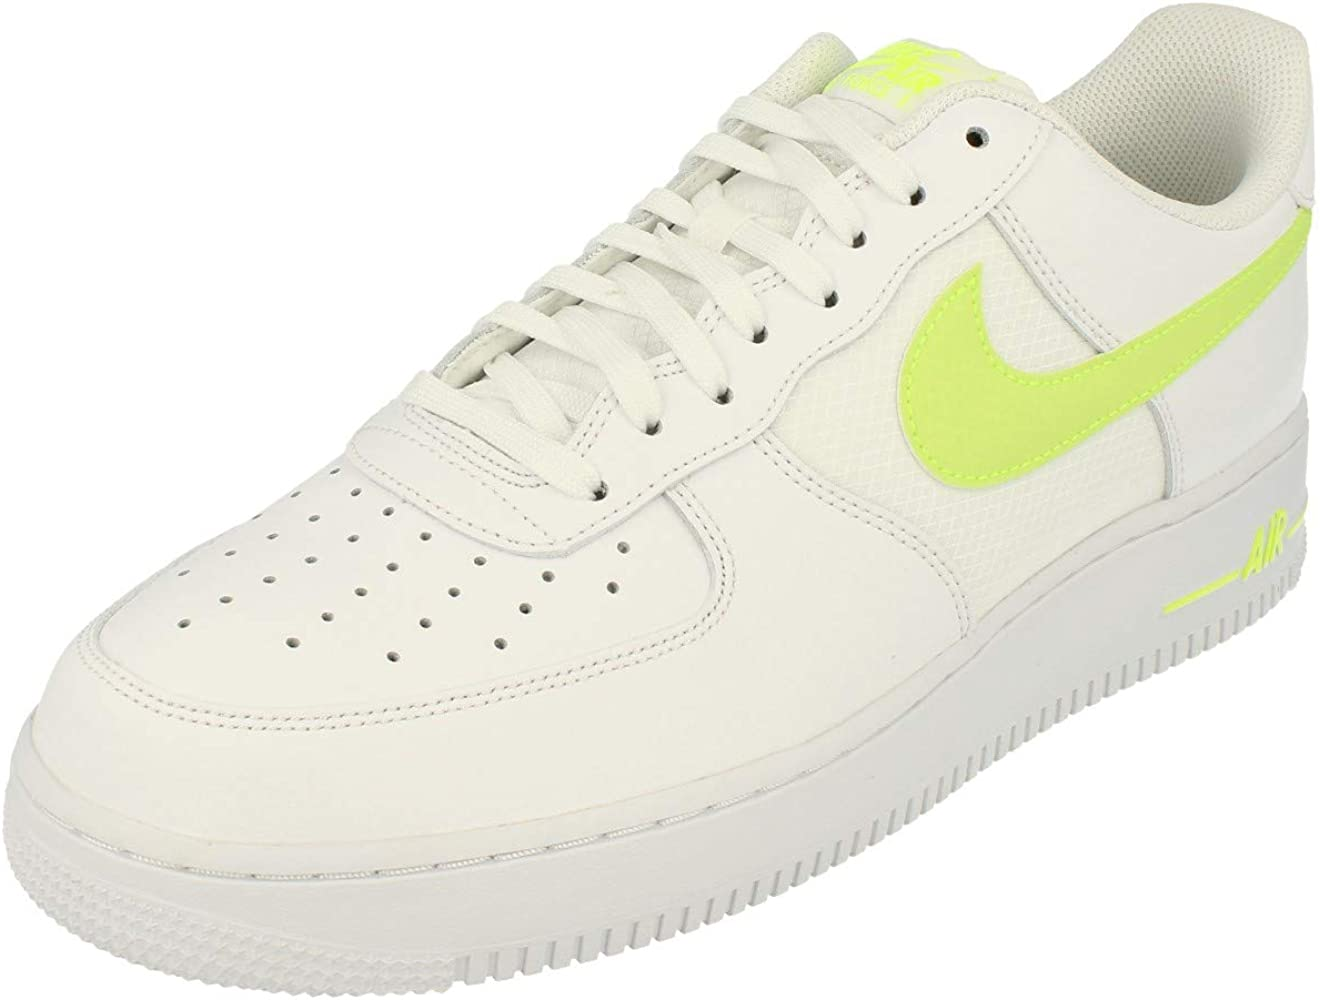 Air Force 1 07 LV8 Herren Trainers Cd1516 Sneakers Schuhe